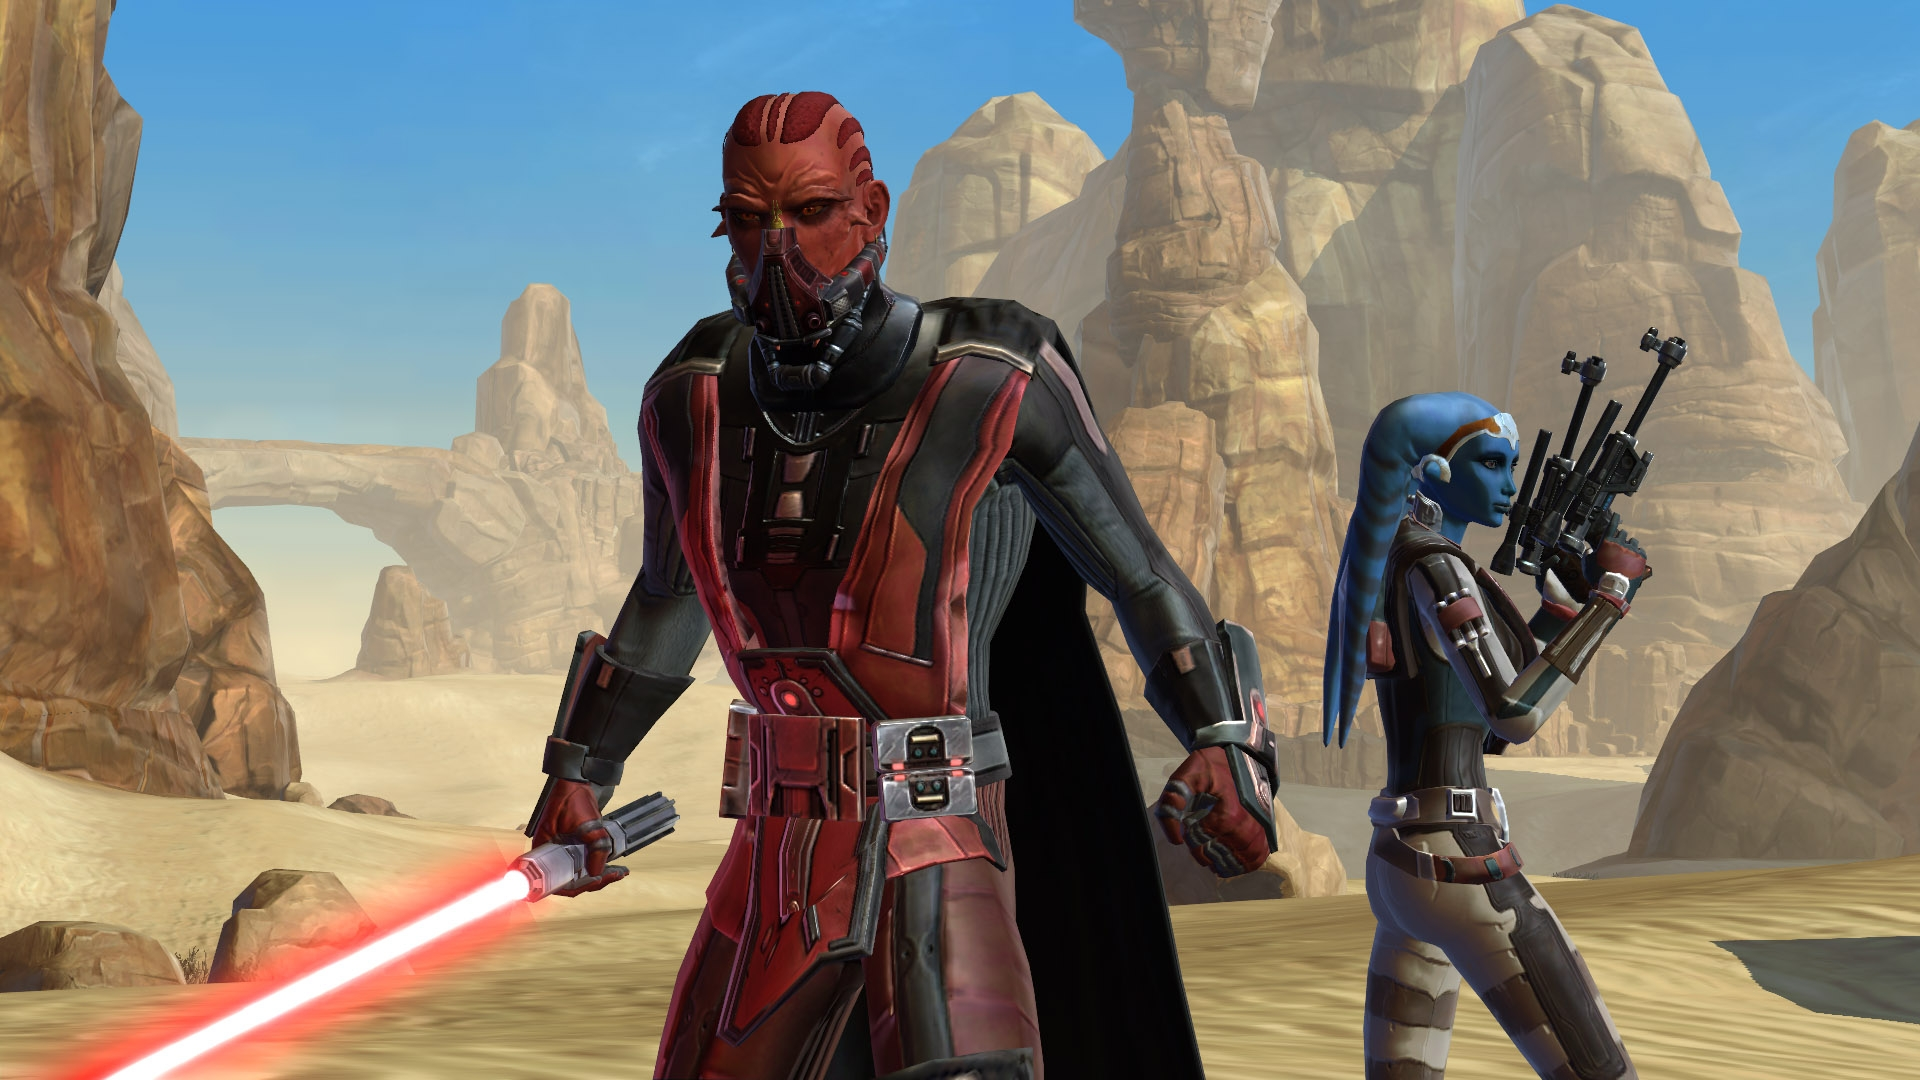 Star Wars: The Old Republic 60 days